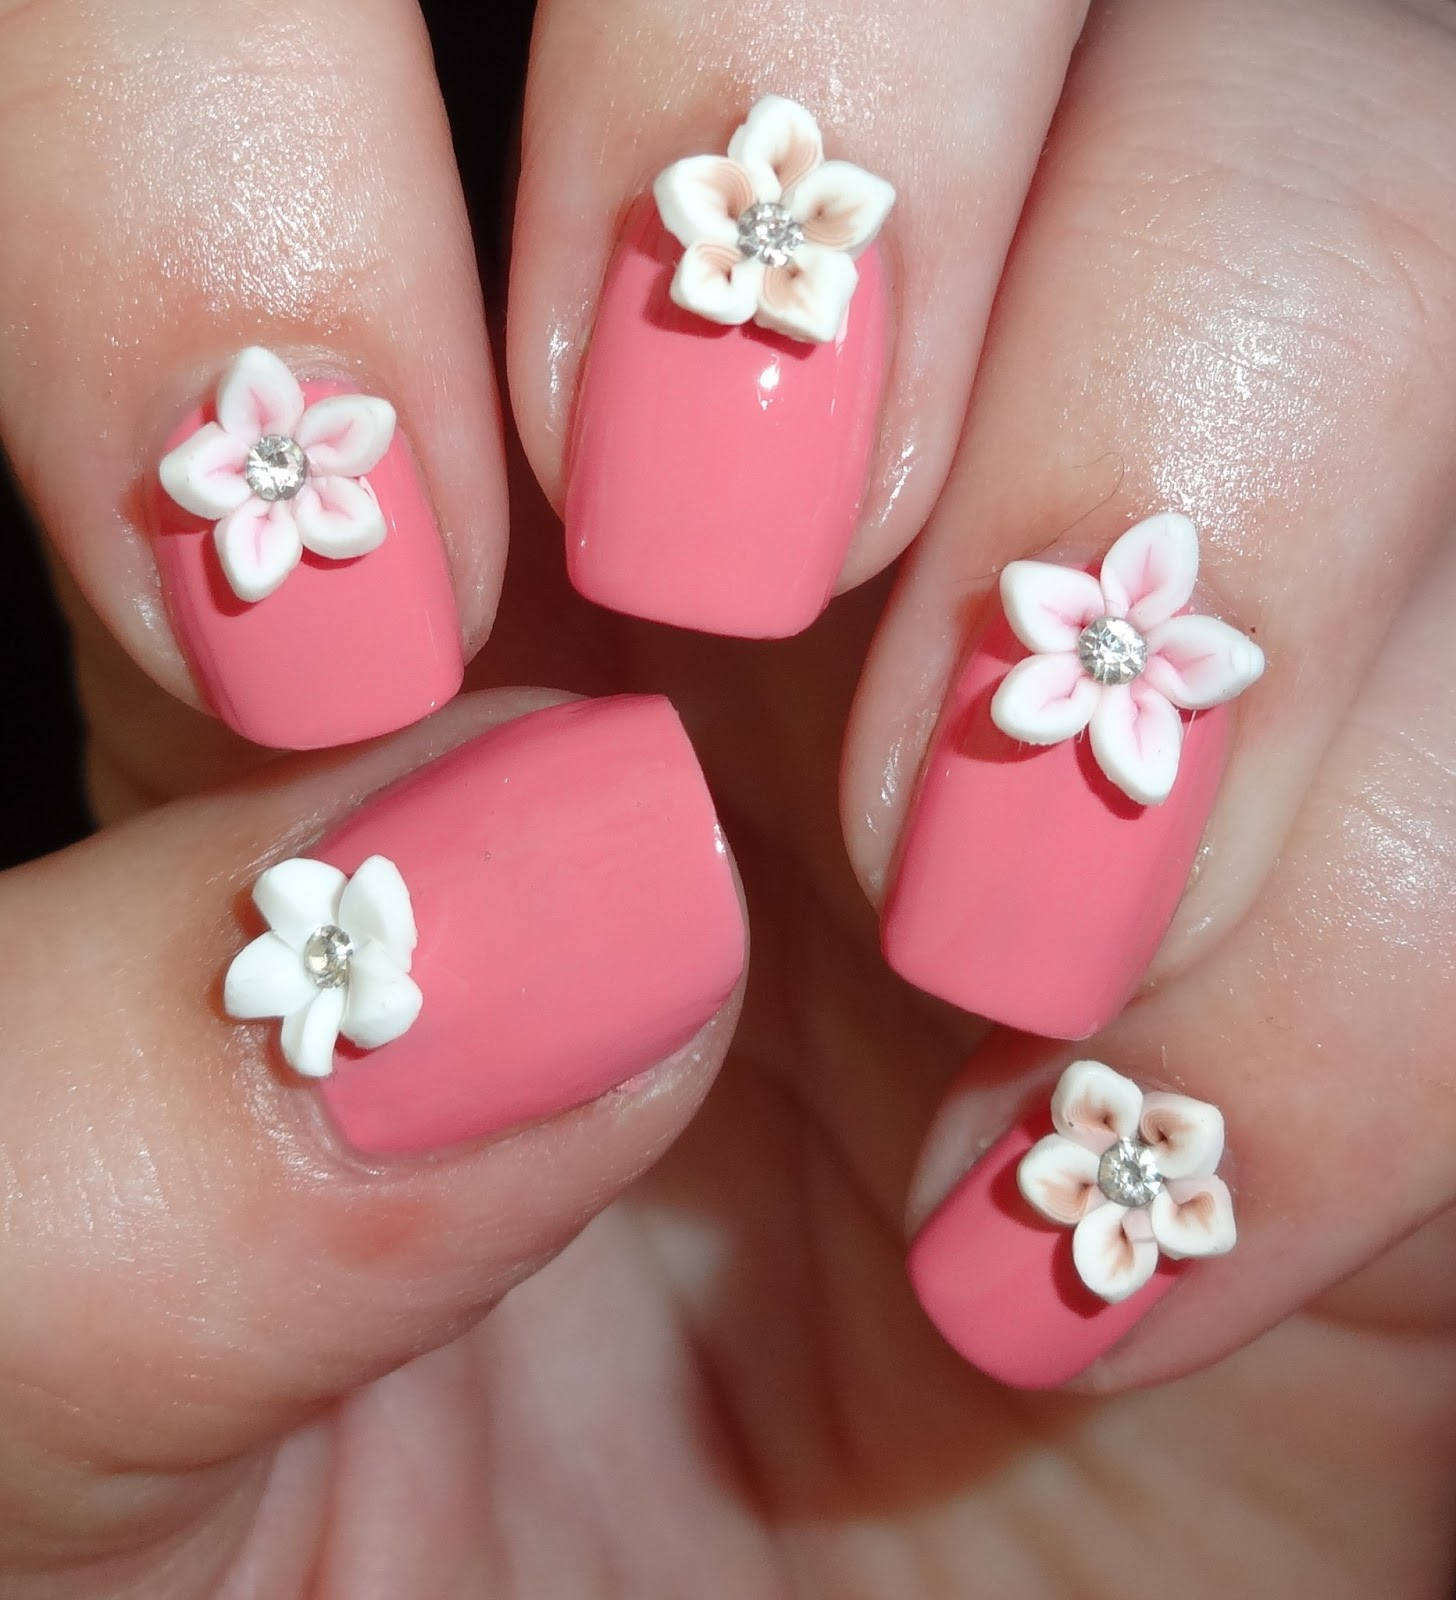 Flower Nail Art: Wendy's Delights: Tmart 12 Colors Fimo Flower With Diamond